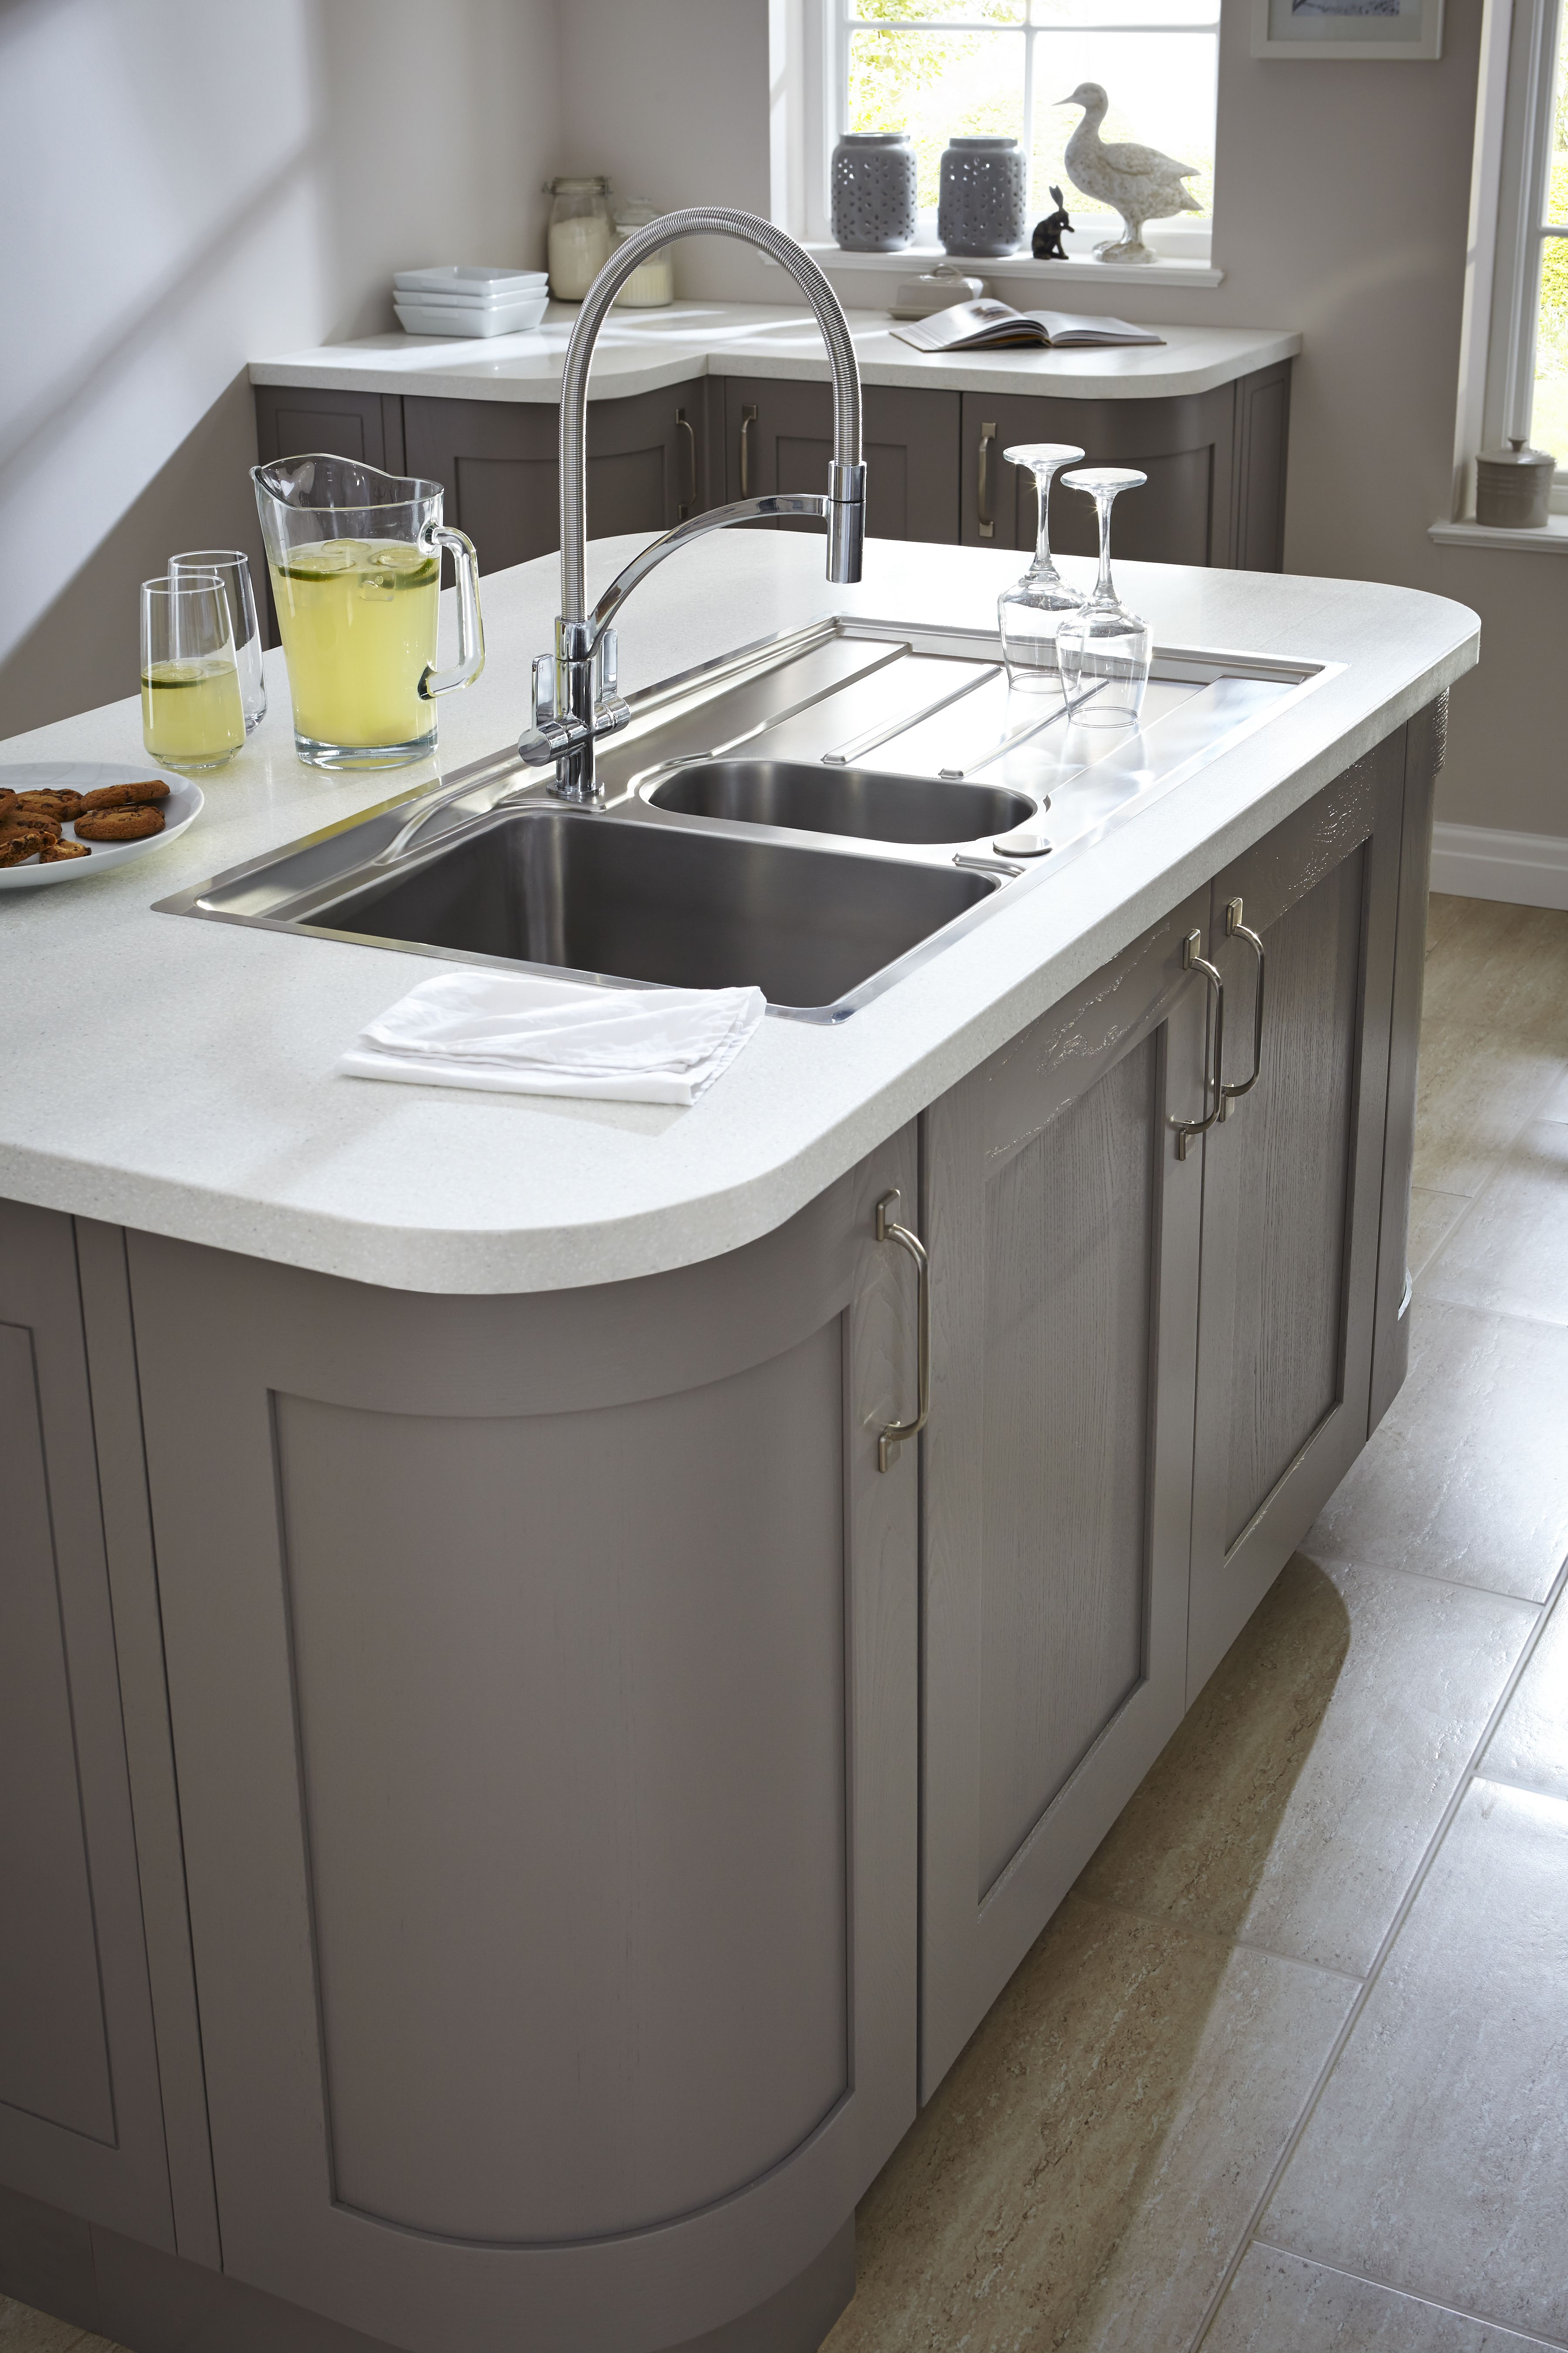 Corner units can still be a viable option for your kitchen